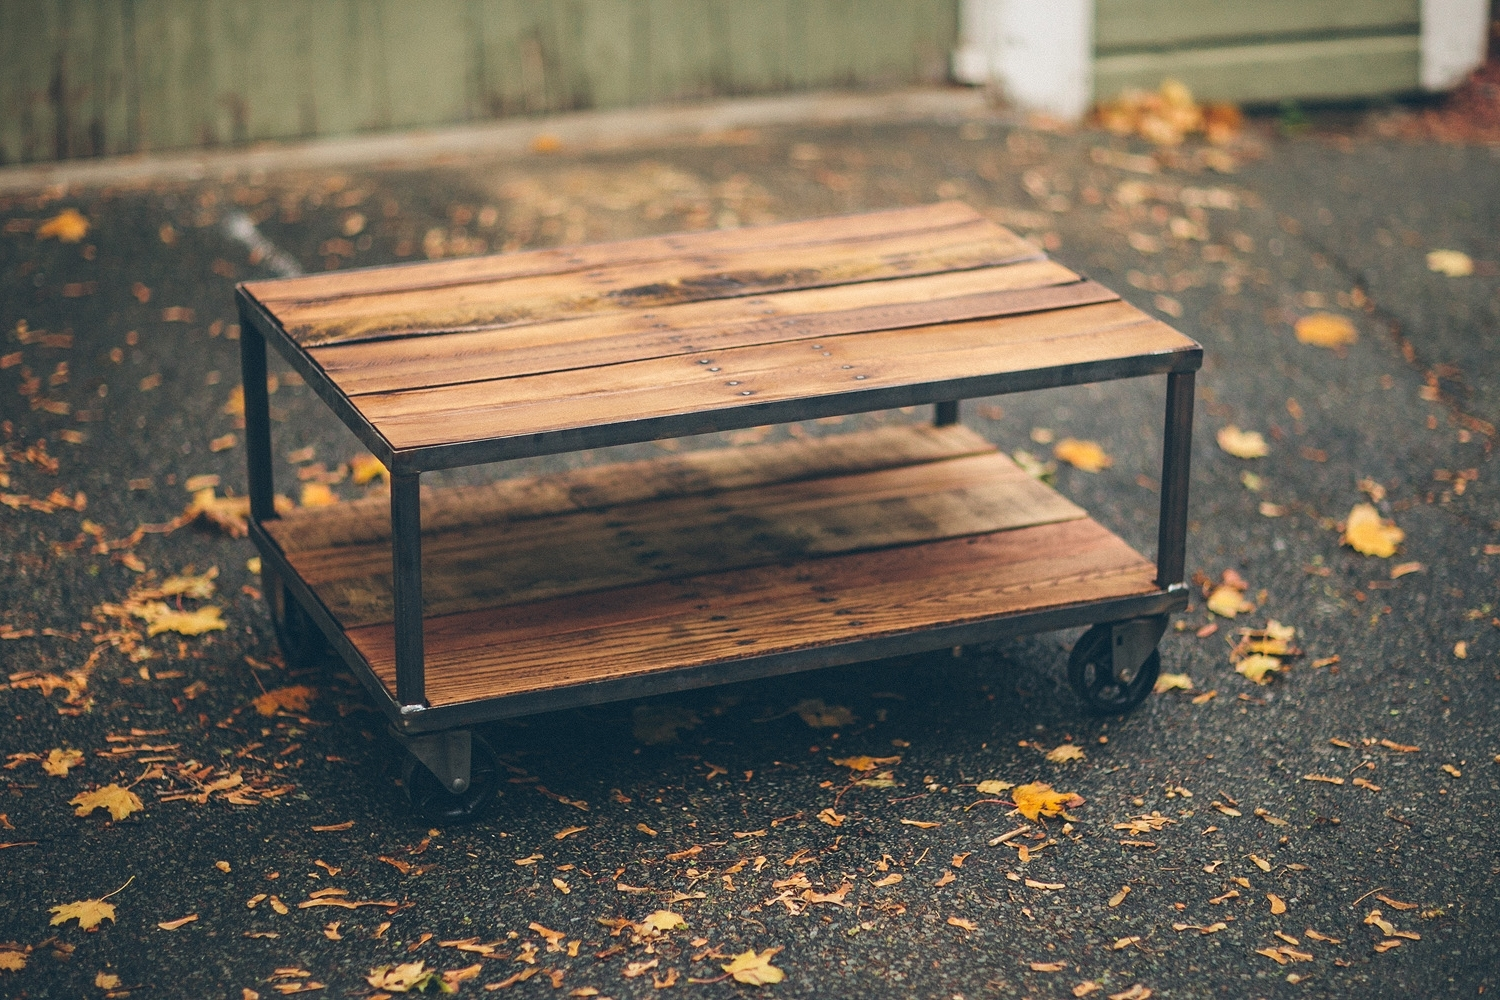 Vintage Casters: Perfect For A Reclaimed Wood Coffee Table In Current Autumn Cocktail Tables With Casters (View 19 of 20)